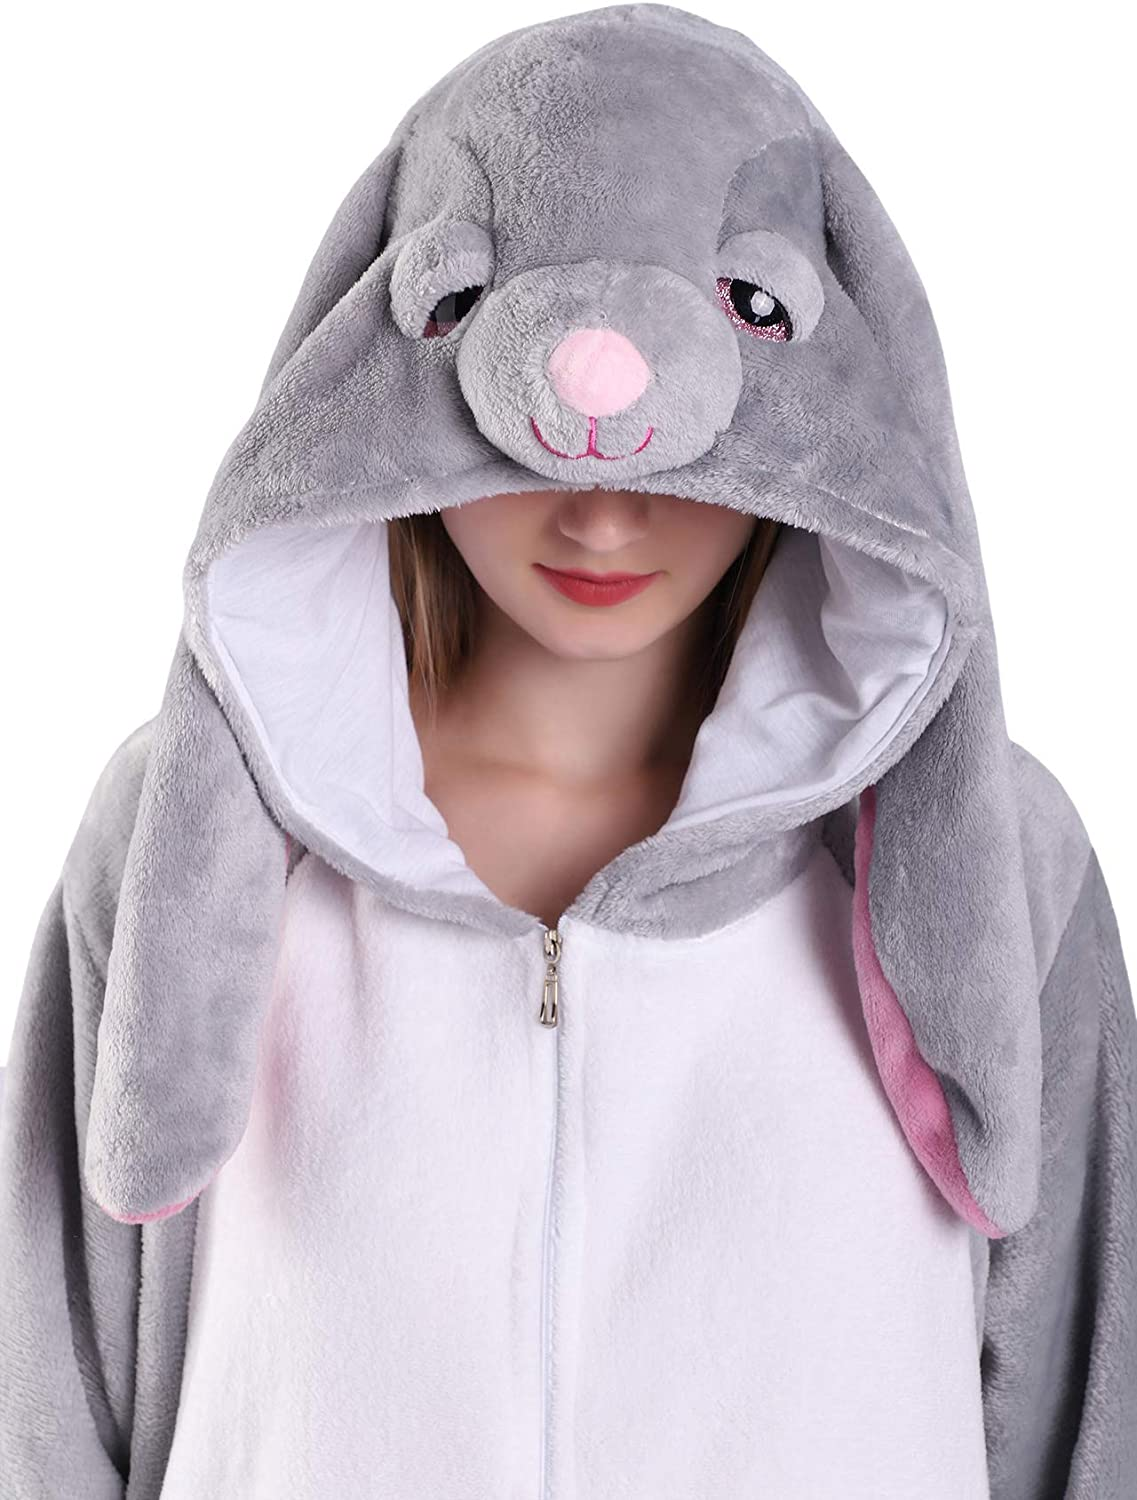 EJsoyo Adult Onesie Bunny Sleepwear Lion Animal Puppy Cartoon Costume and Teens Pajamas Unisex Christmas Halloween Cosplay